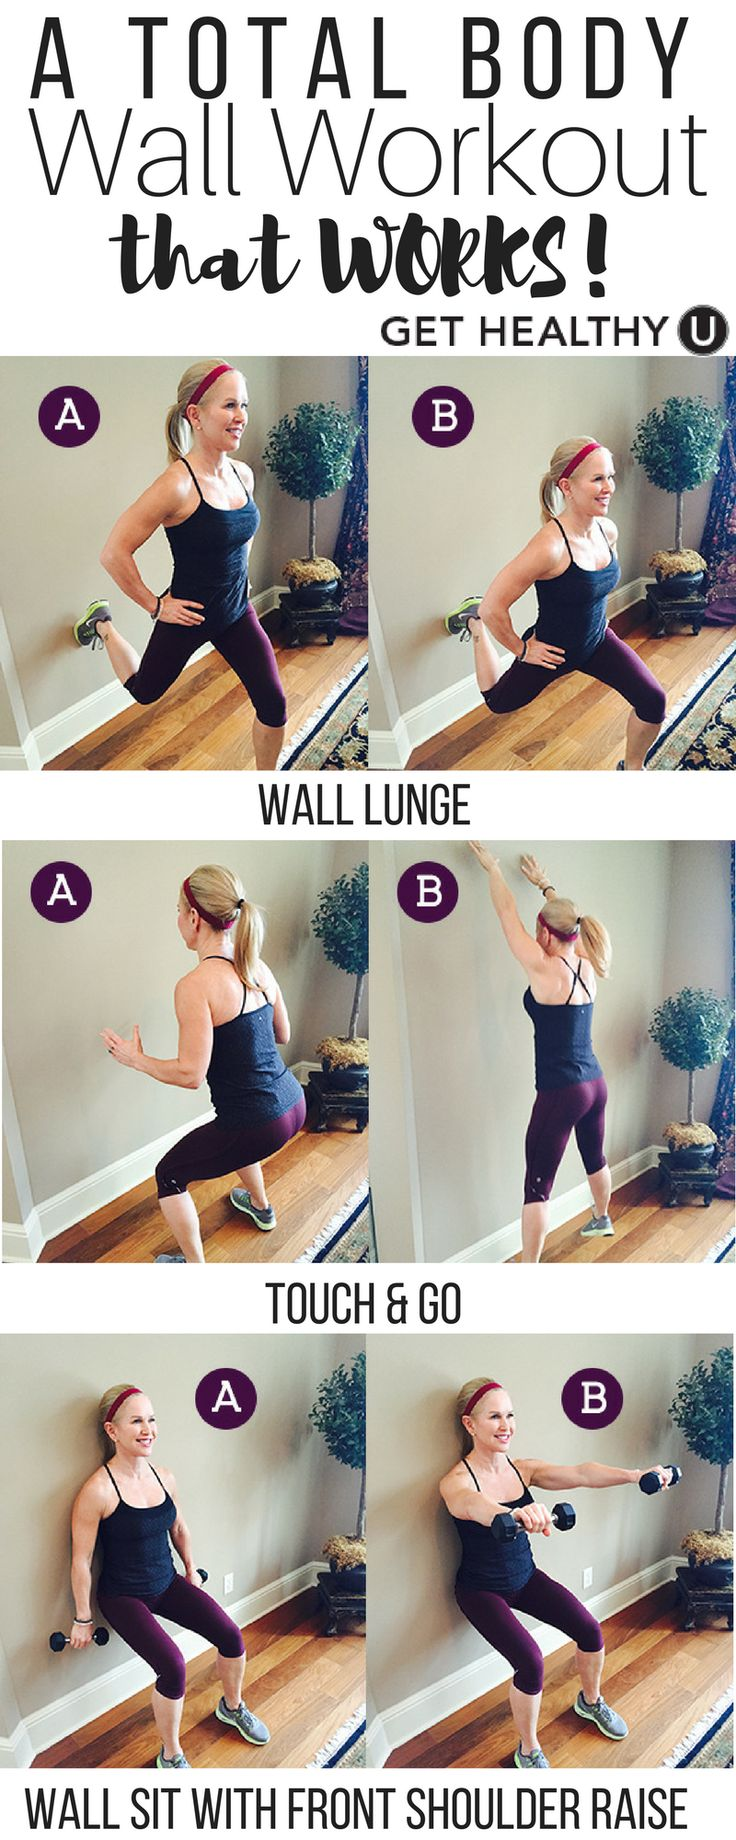 Check out our simple, 3-move workout that will tighten and tone your entire body! No workout equipment? No problem! All you need is a wall!